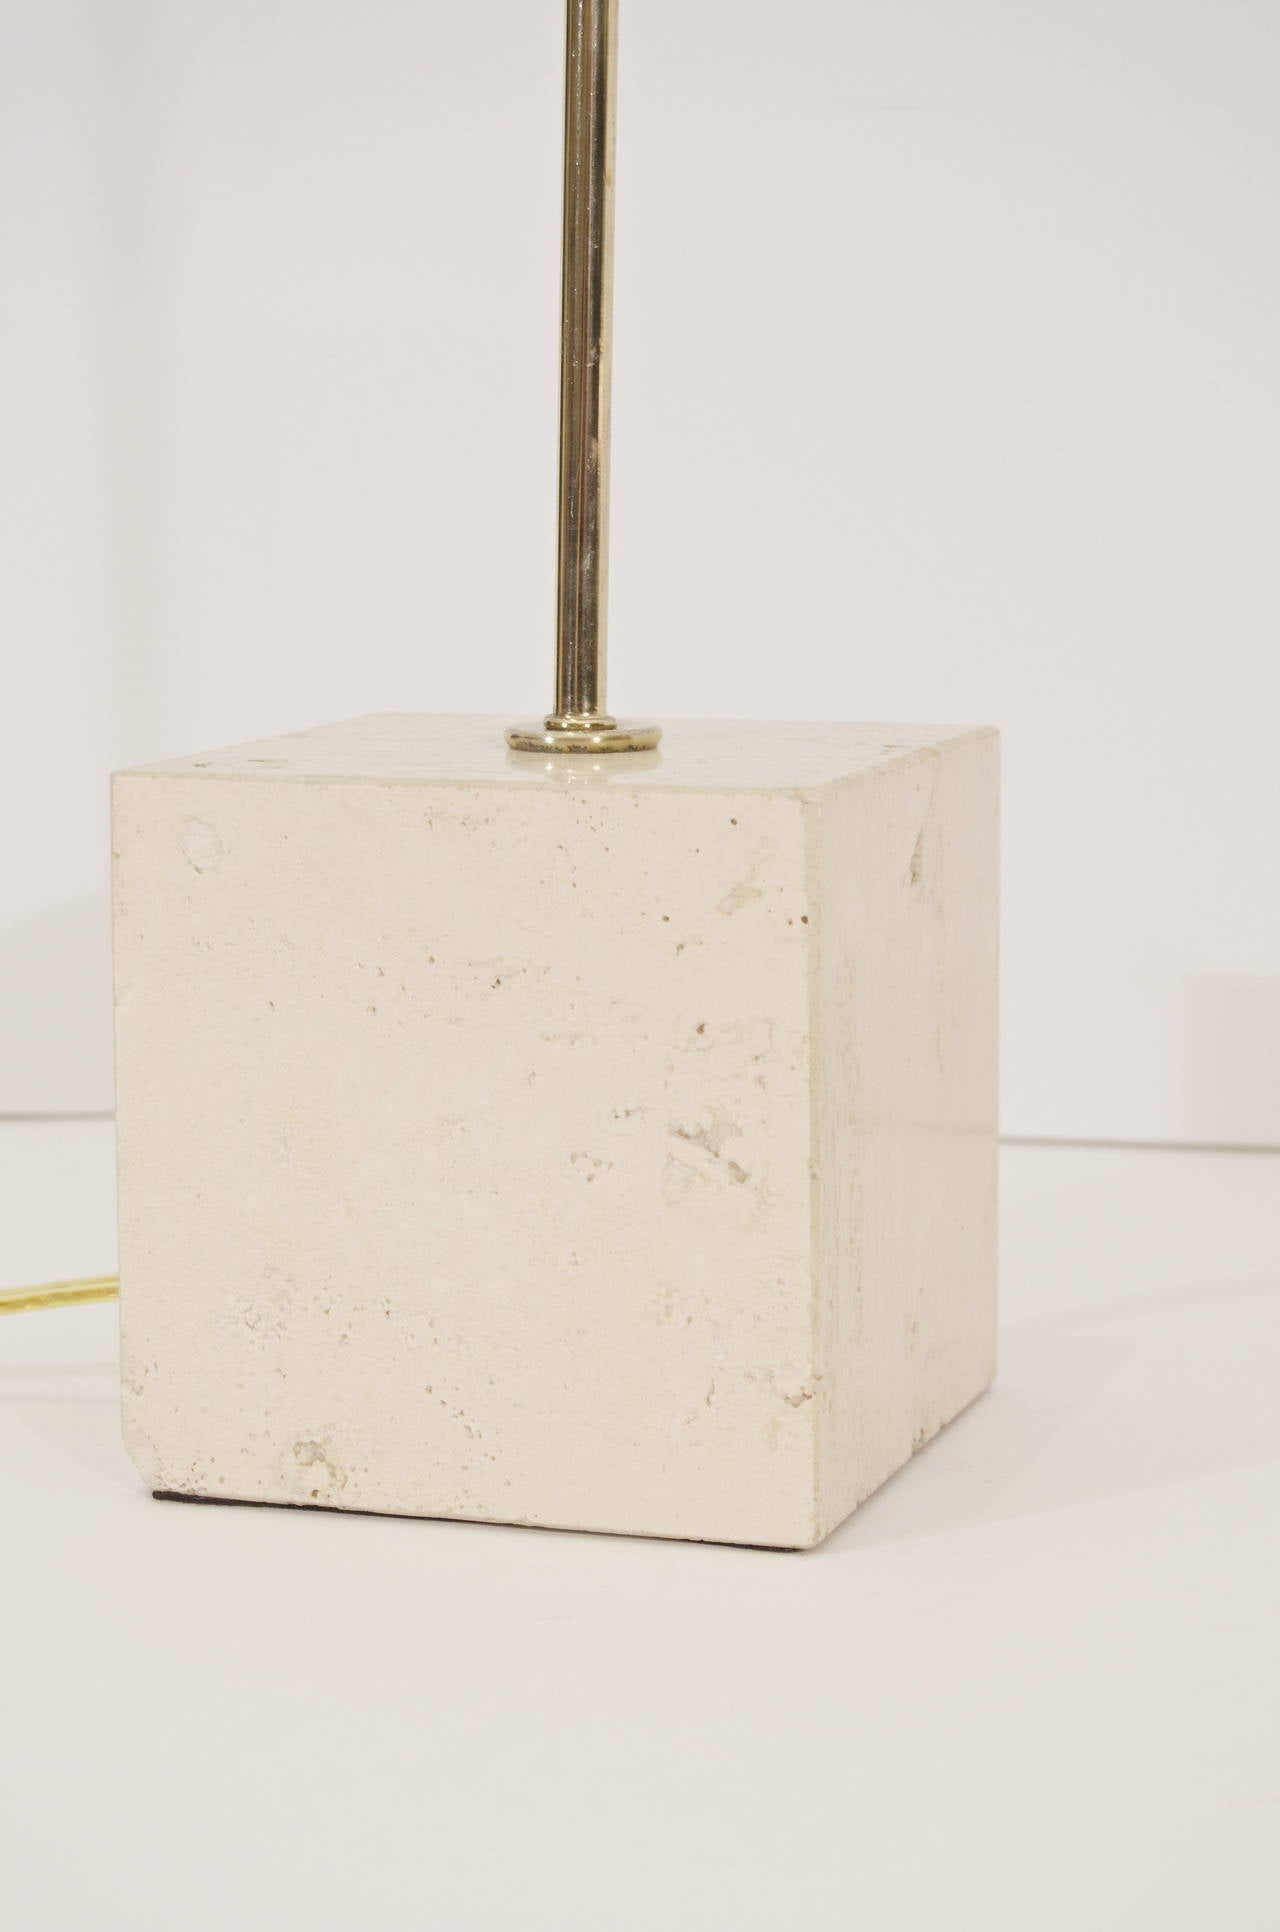 Guzzini Brass Arc Table Lamp With Travertine Base At 1stdibs